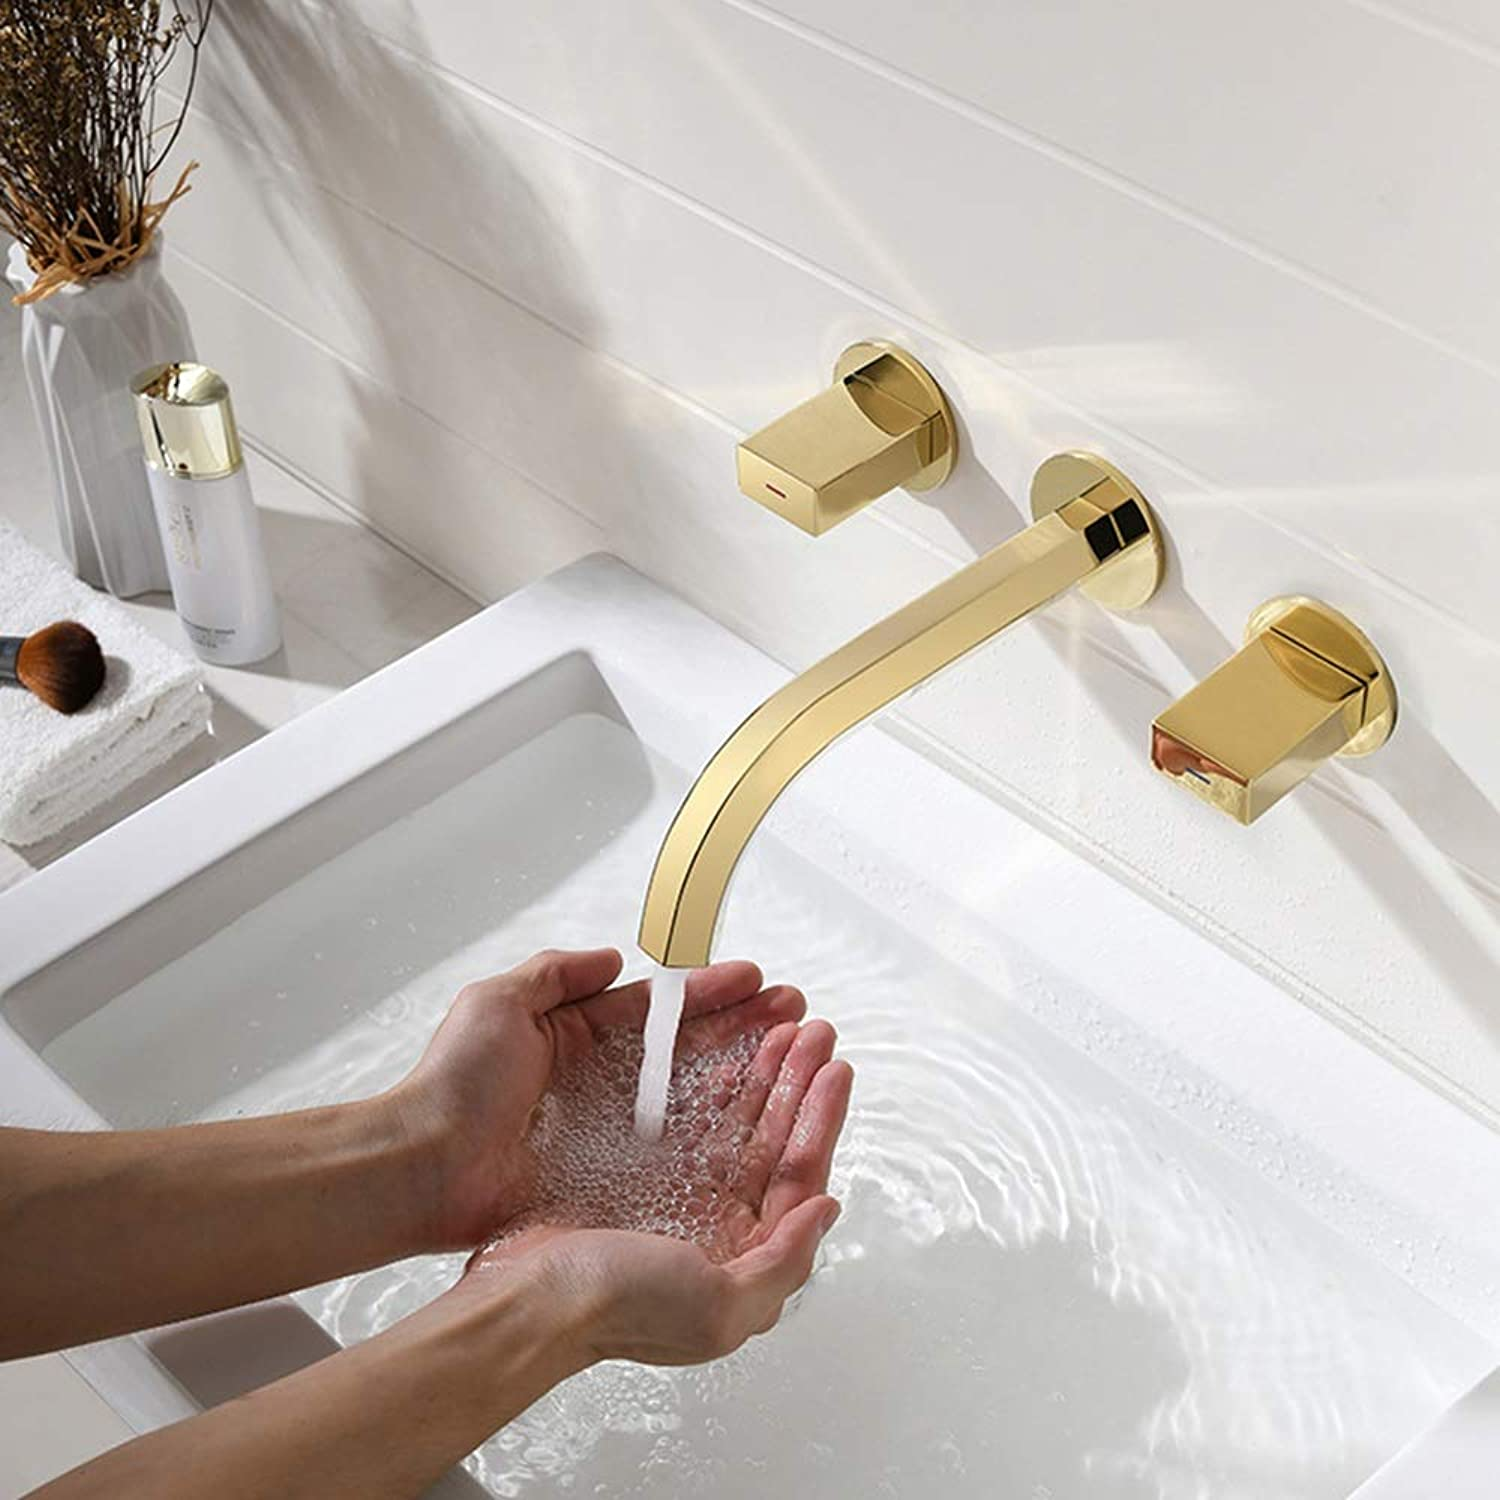 AmzGxp gold All-copper Wall-mounted Lavatory Faucet Bathtub Faucet Set Hot And Cold Washbasin Mixer